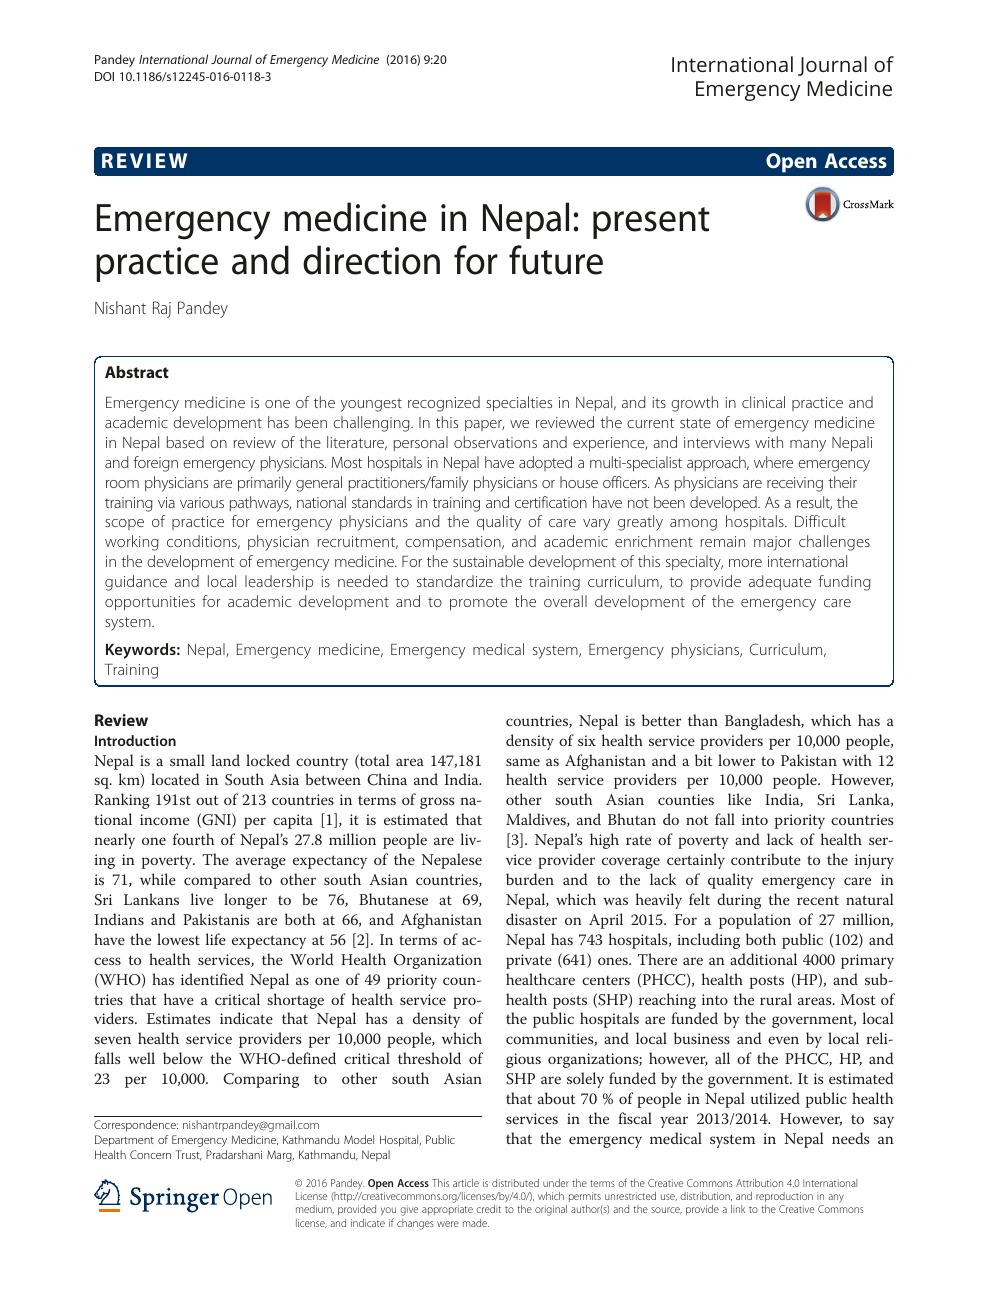 Emergency medicine in Nepal: present practice and direction